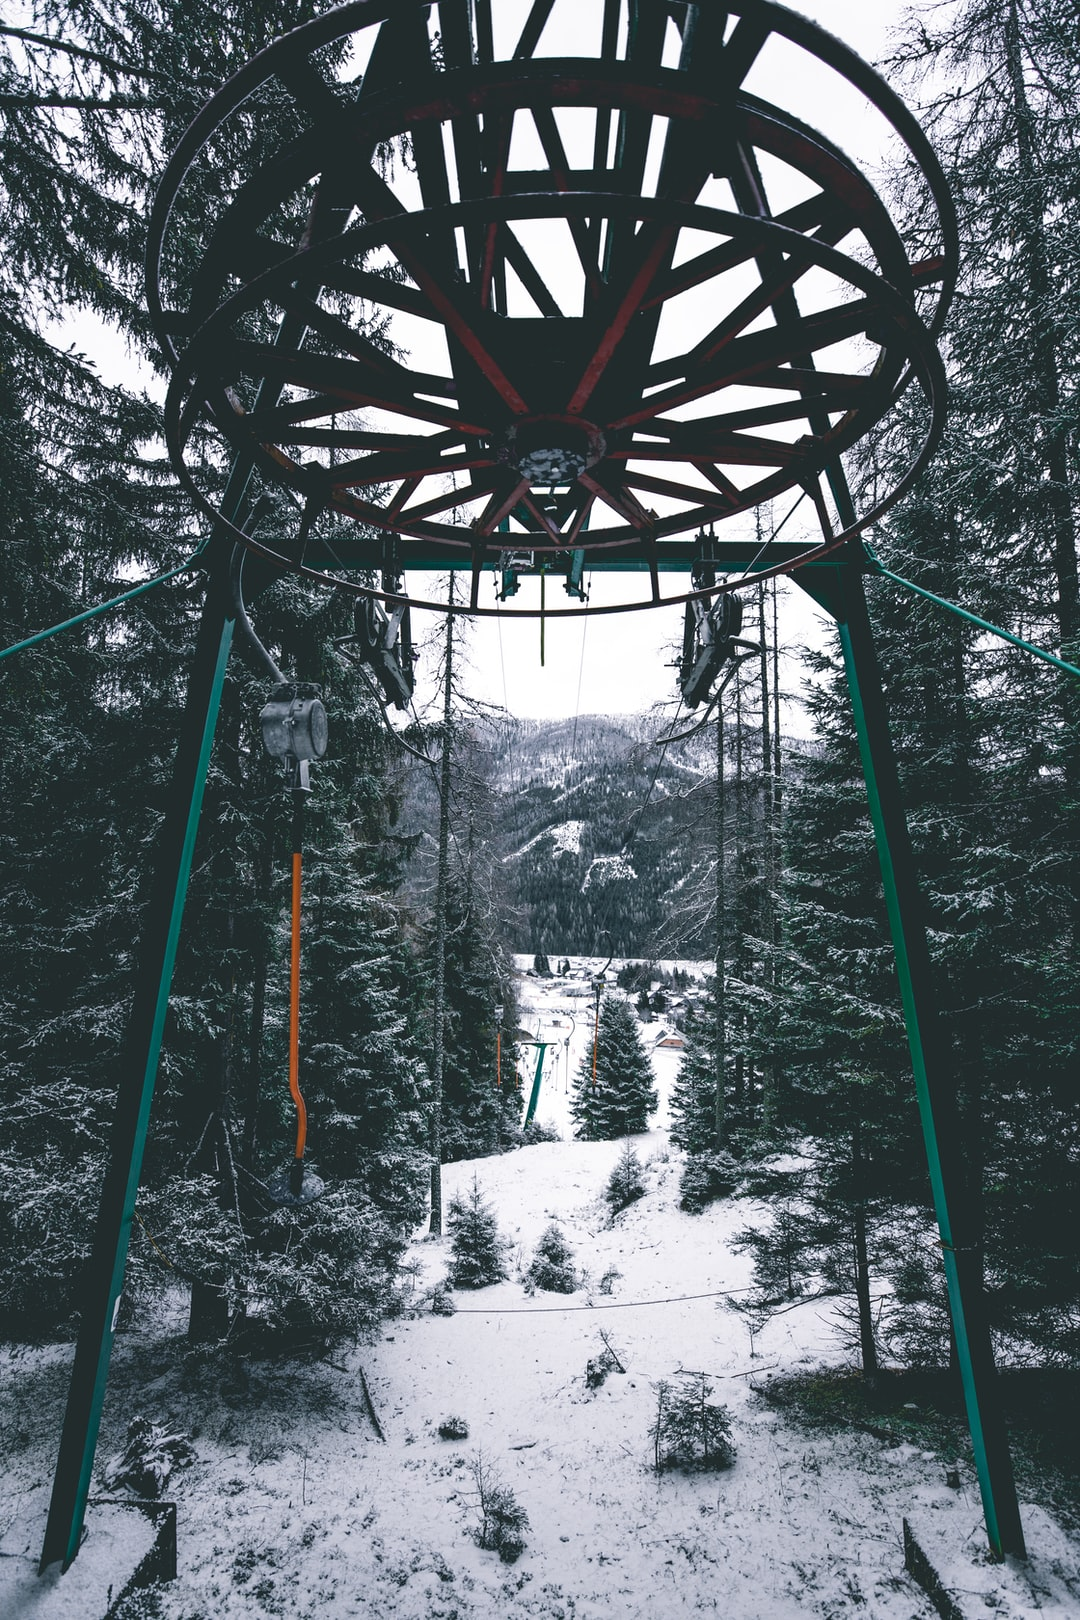 I was taking a walk in the snowy woods when I suddenly found this apparently abandoned ski lift and I just couldn't resist